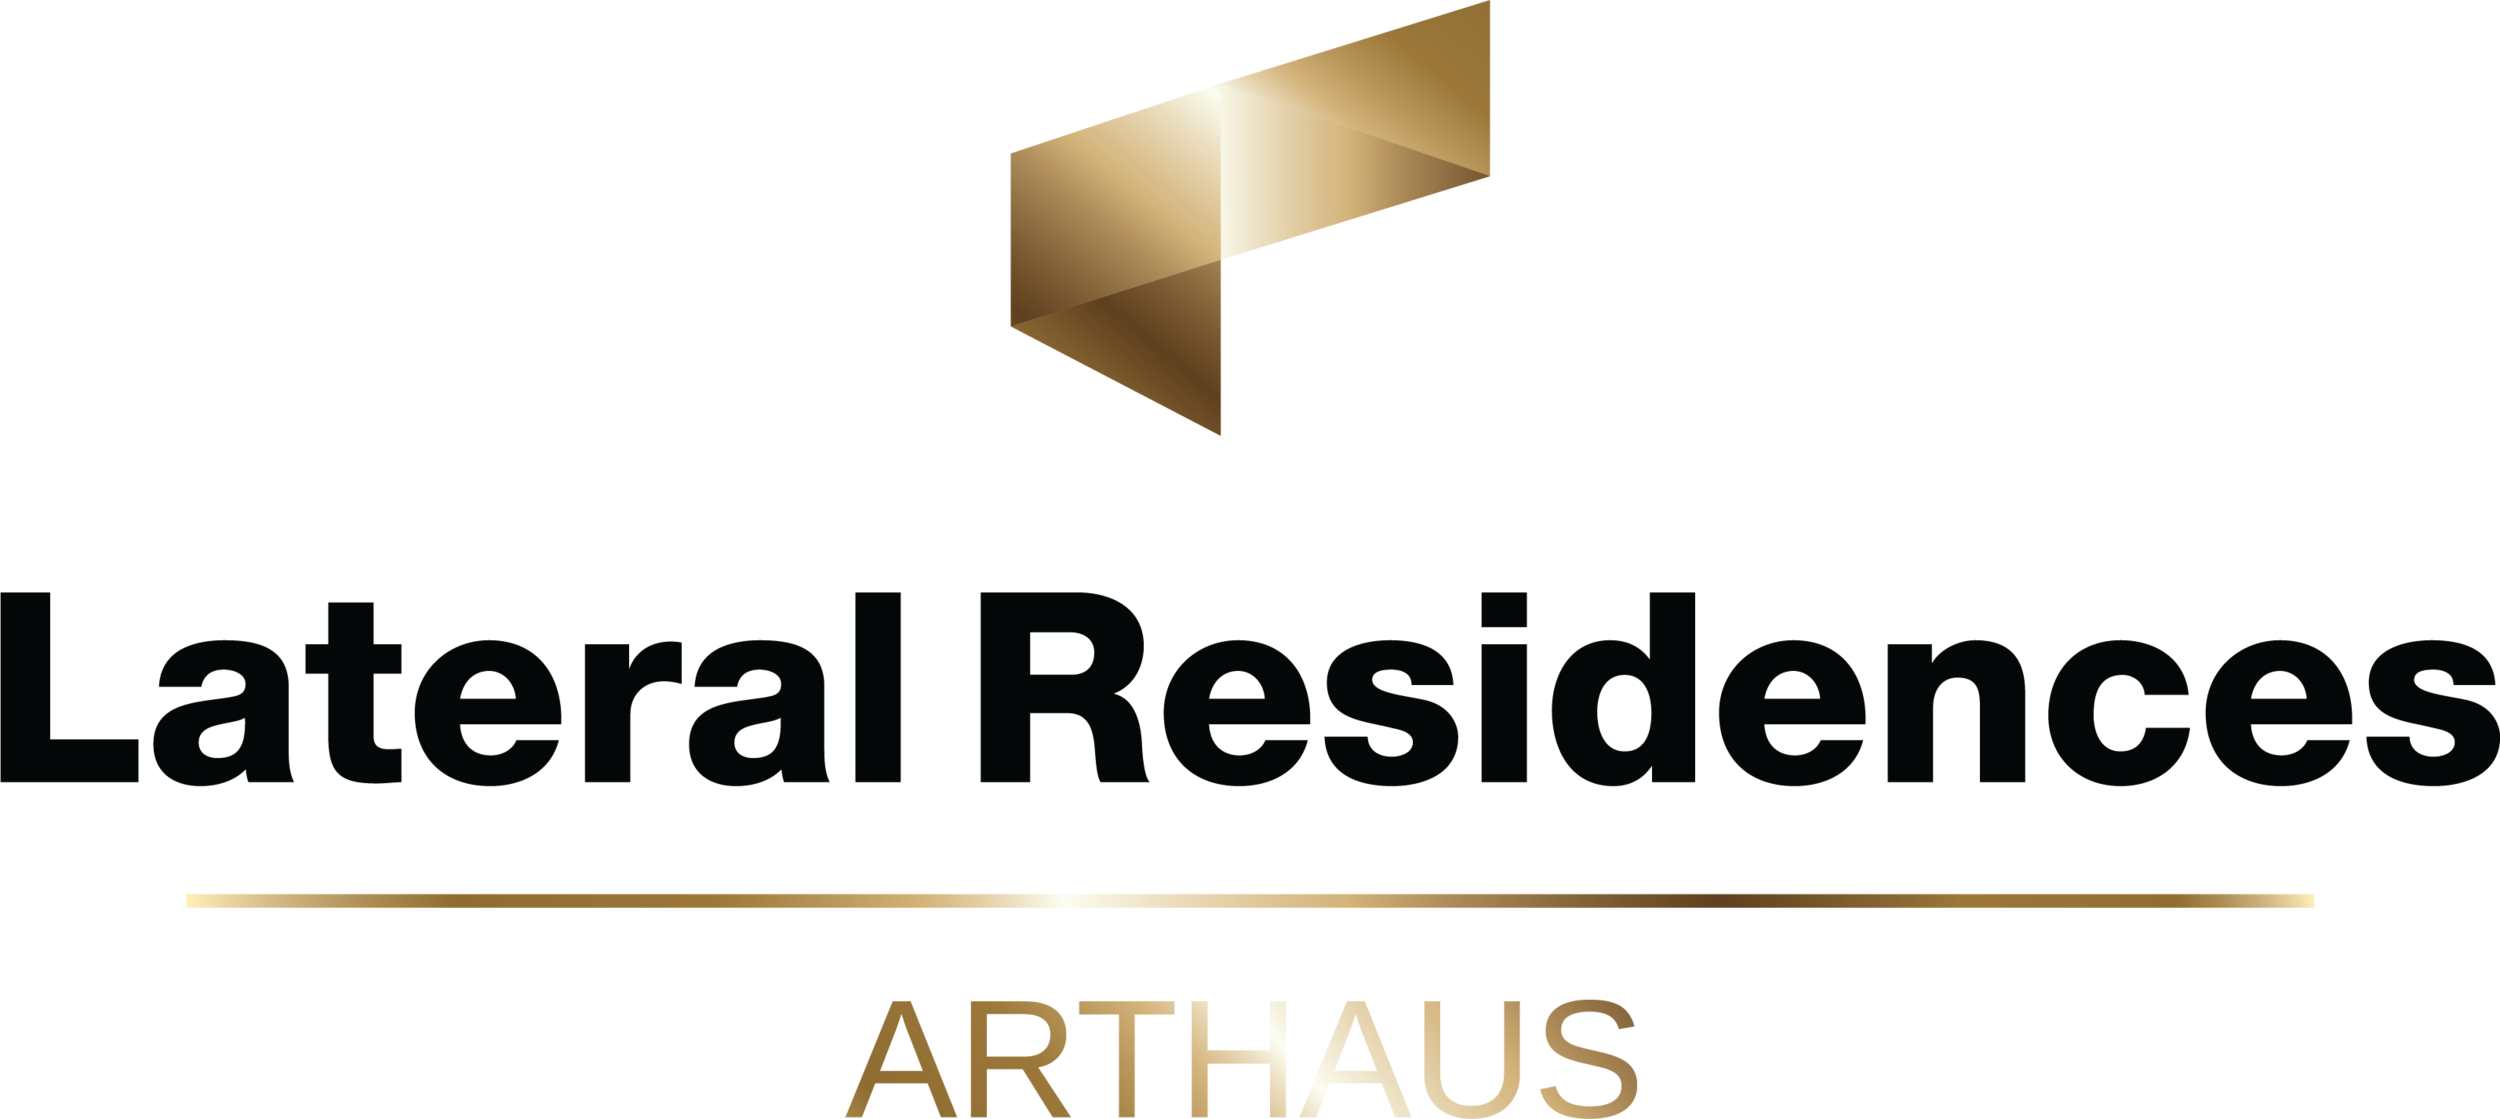 Lateral Res arthaus BLACK.png